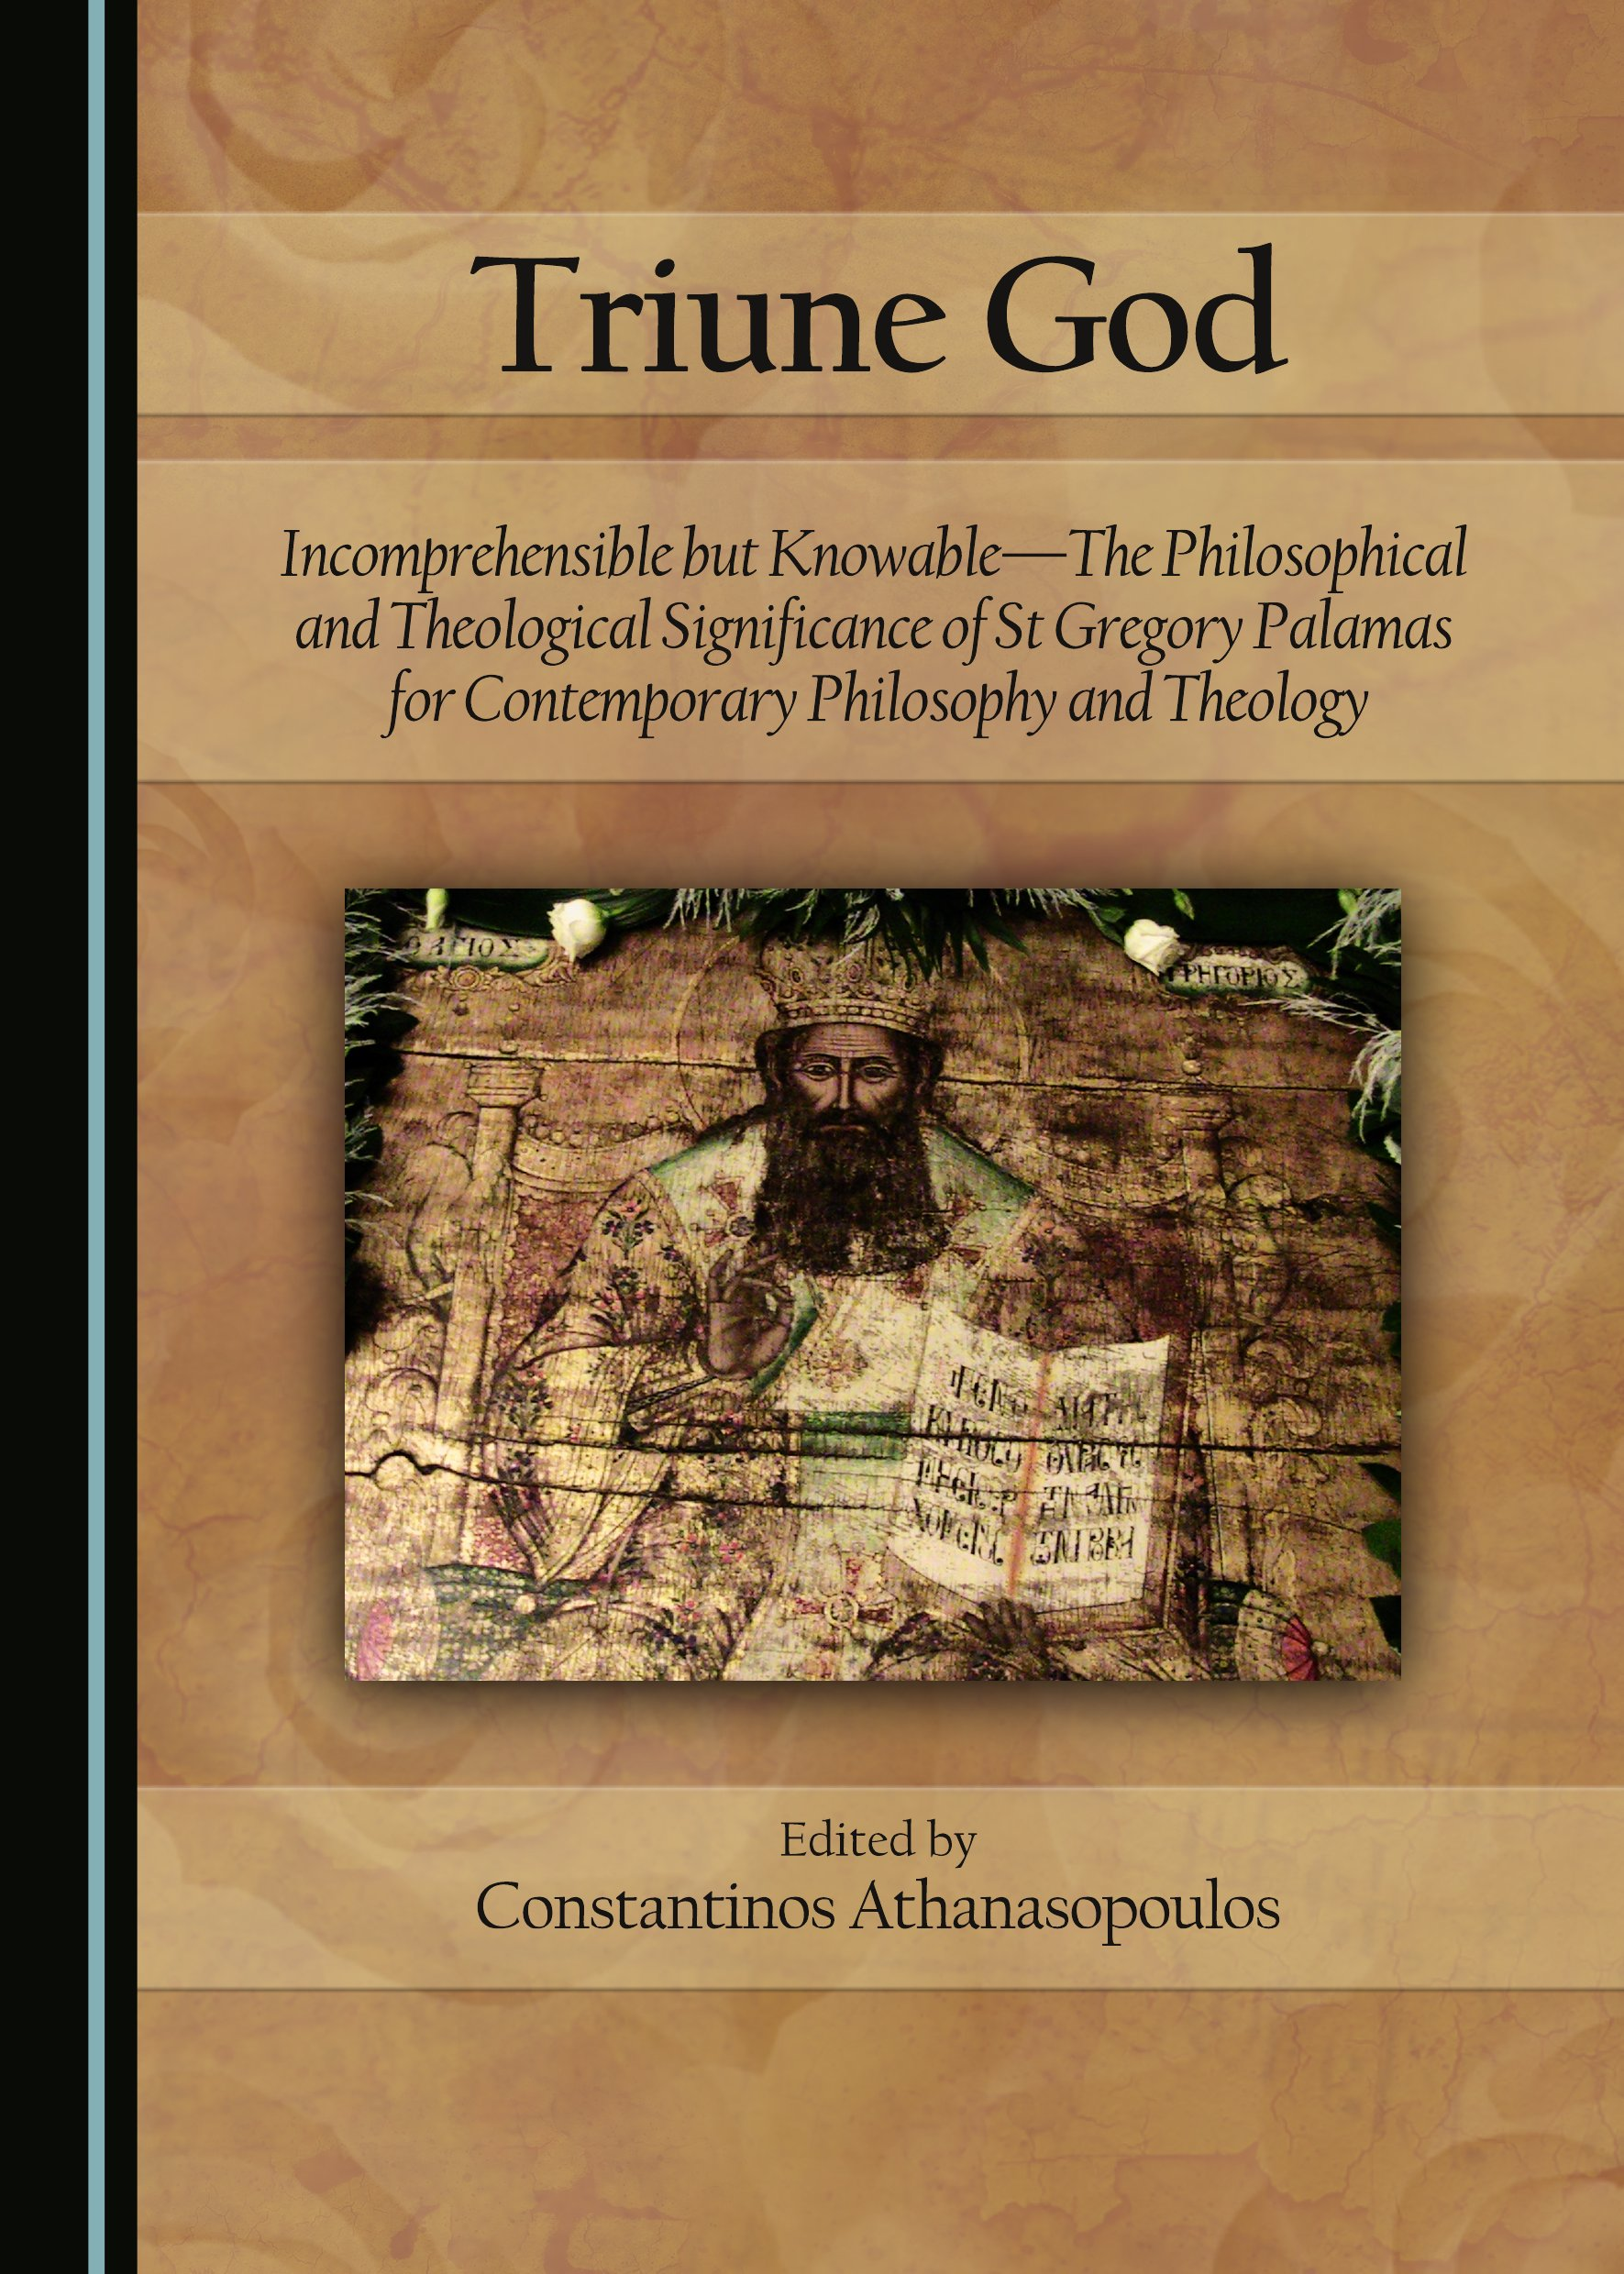 Triune God: Incomprehensible but Knowable—The Philosophical and Theological Significance of St Gregory Palamas for Contemporary Philosophy and Theology